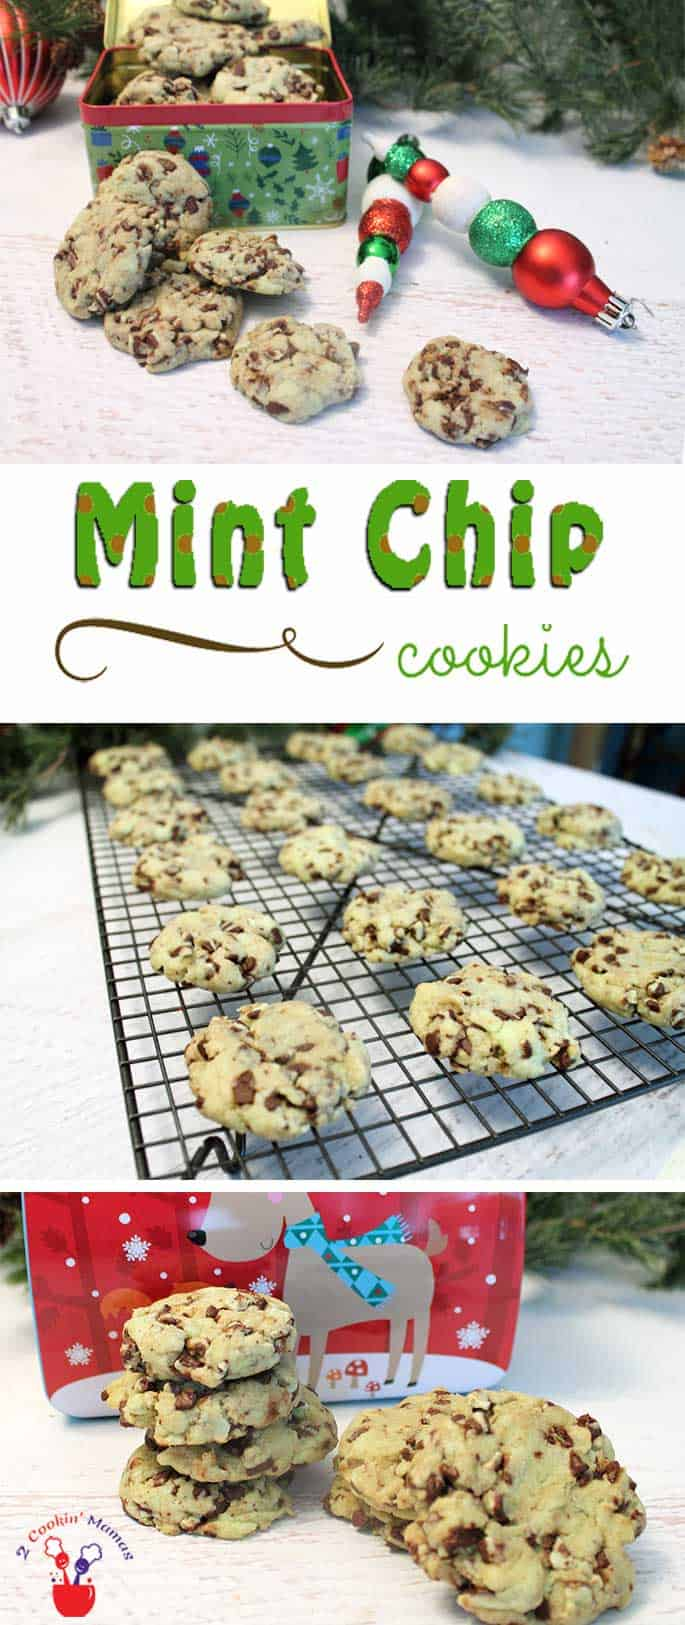 Mint Chip Cookies are easy to make & delicious too! Start with a cake mix, add liquid ingredients then stir in Andes mint chips and wait for the yums! #cookies #Christmascookies #recipe #mint